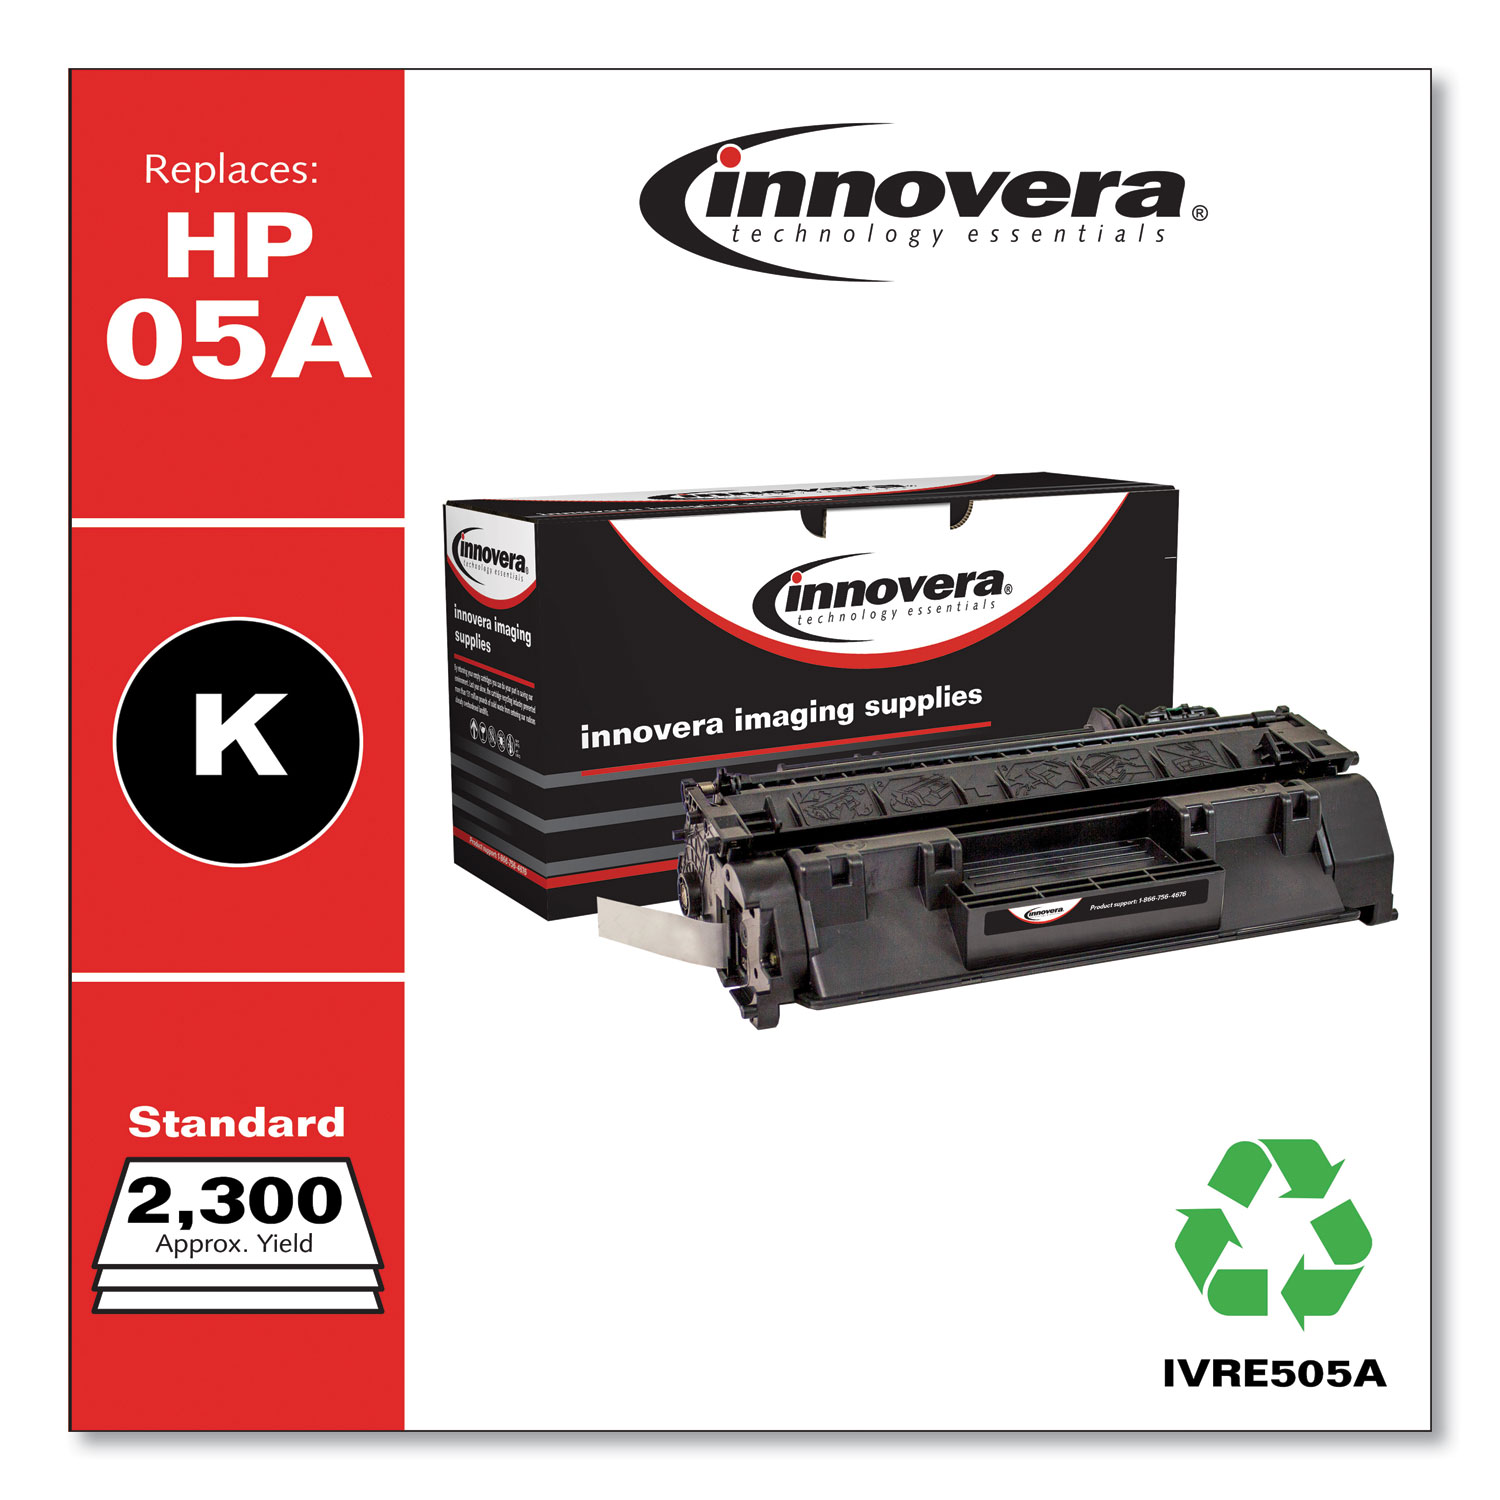 Remanufactured Black Toner Cartridge, Replacement for HP 05A (CE505A), 2,300 Page-Yield